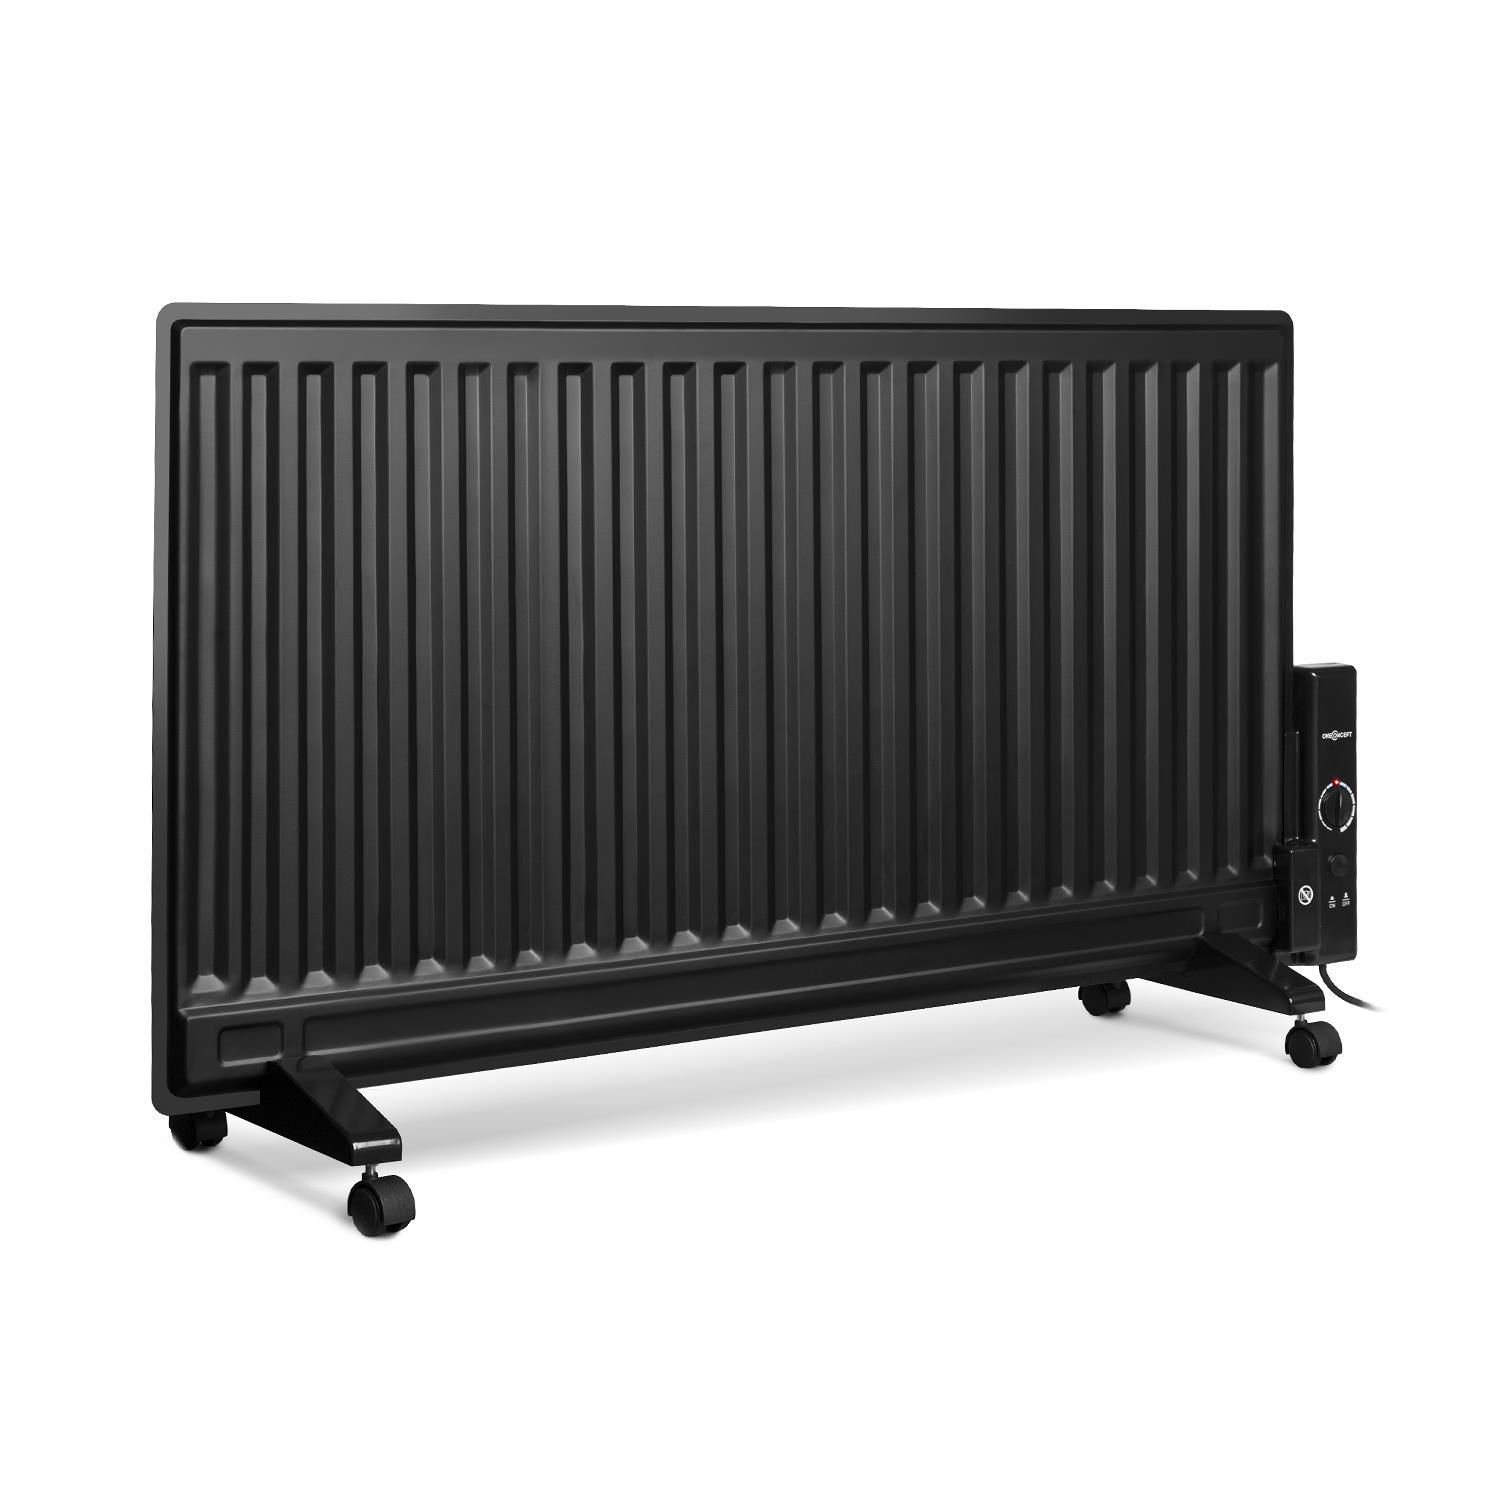 radiateur mobile inertie simple campastyle design radiateur lectrique inertie with radiateur. Black Bedroom Furniture Sets. Home Design Ideas